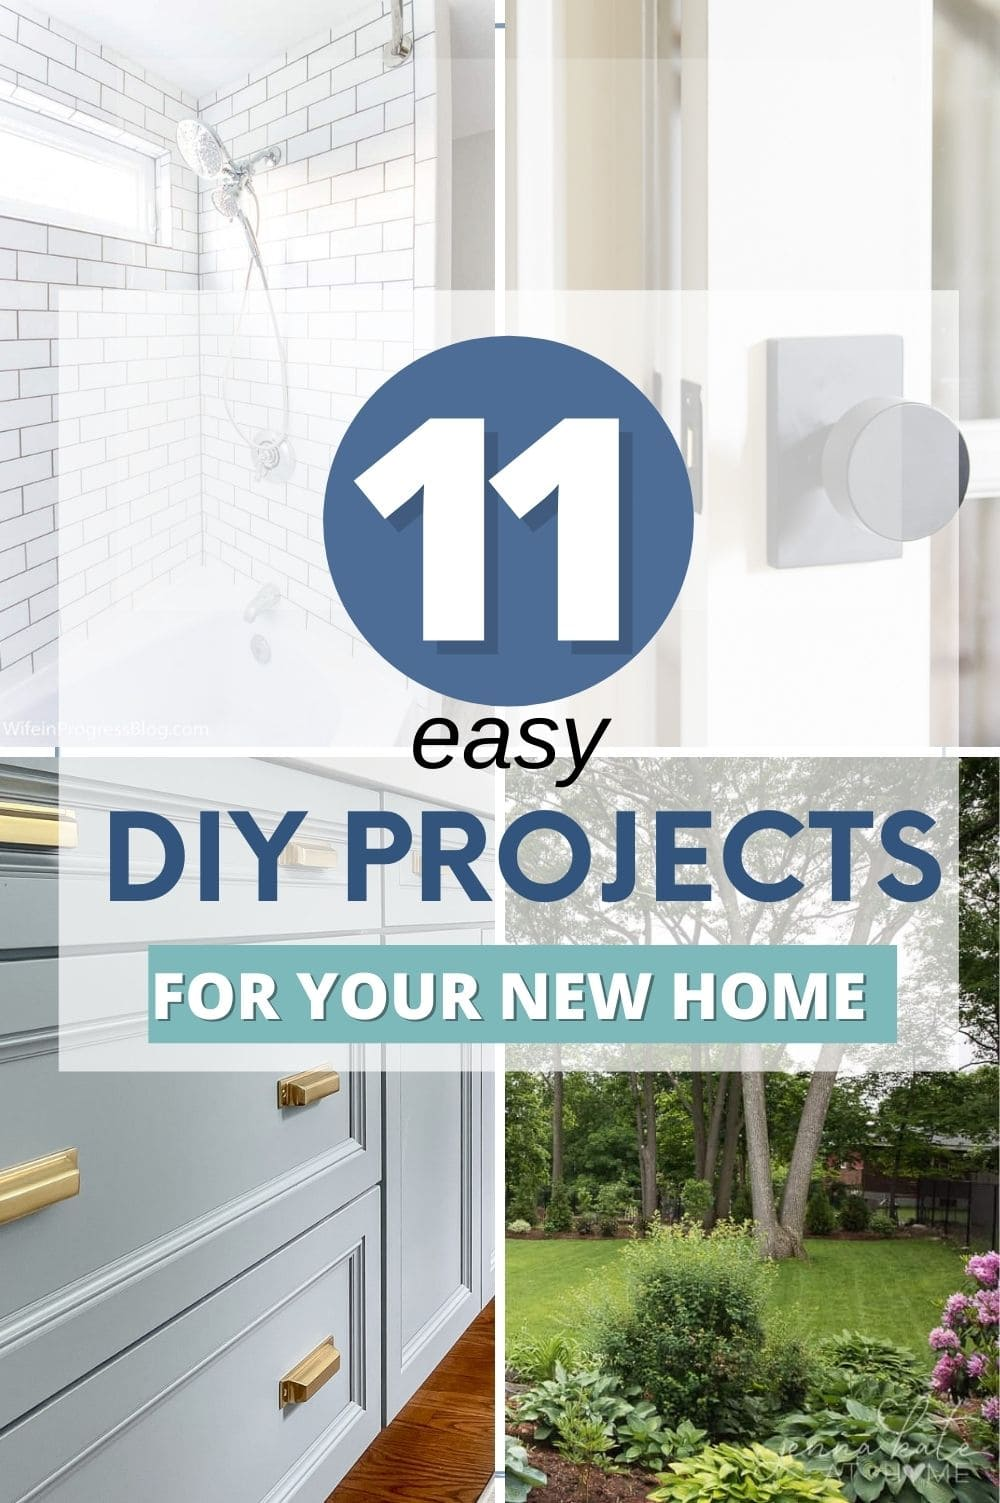 diy projetcts for your new home pin